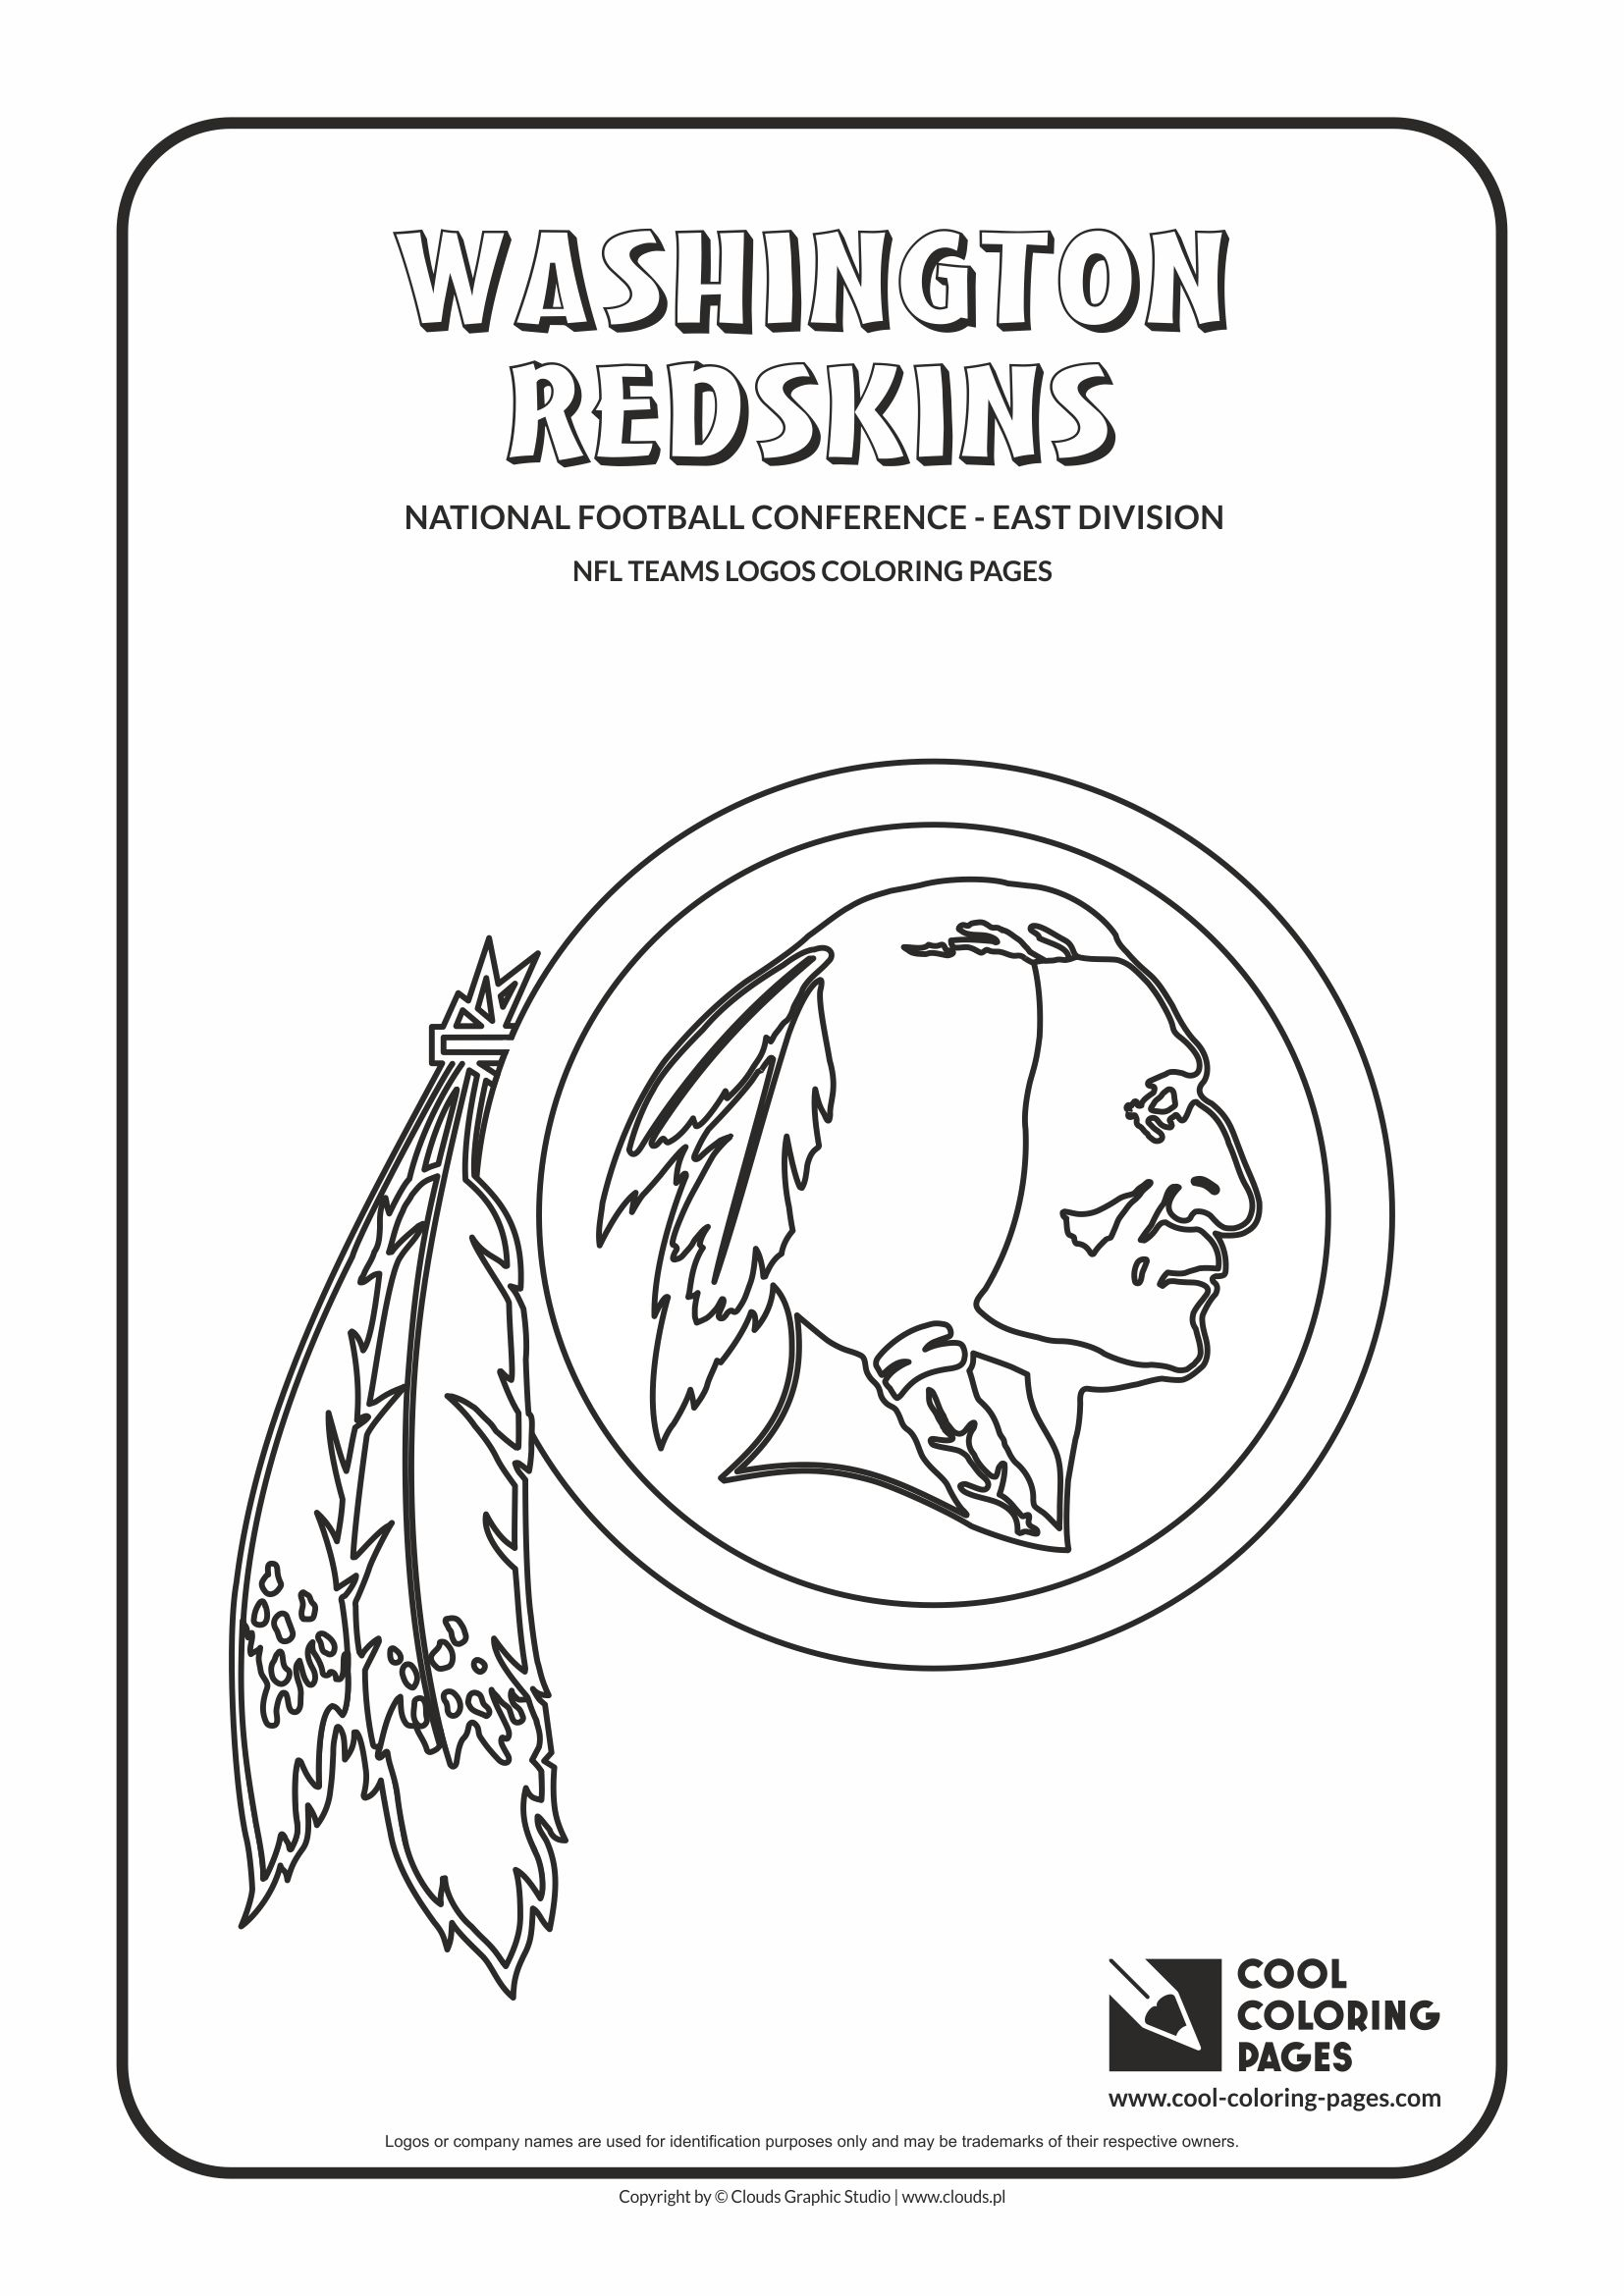 Cool Coloring Pages - NFL American Football Clubs Logos - National Football Conference - East Division / Washington Redskins logo / Coloring page with Washington Redskins logo